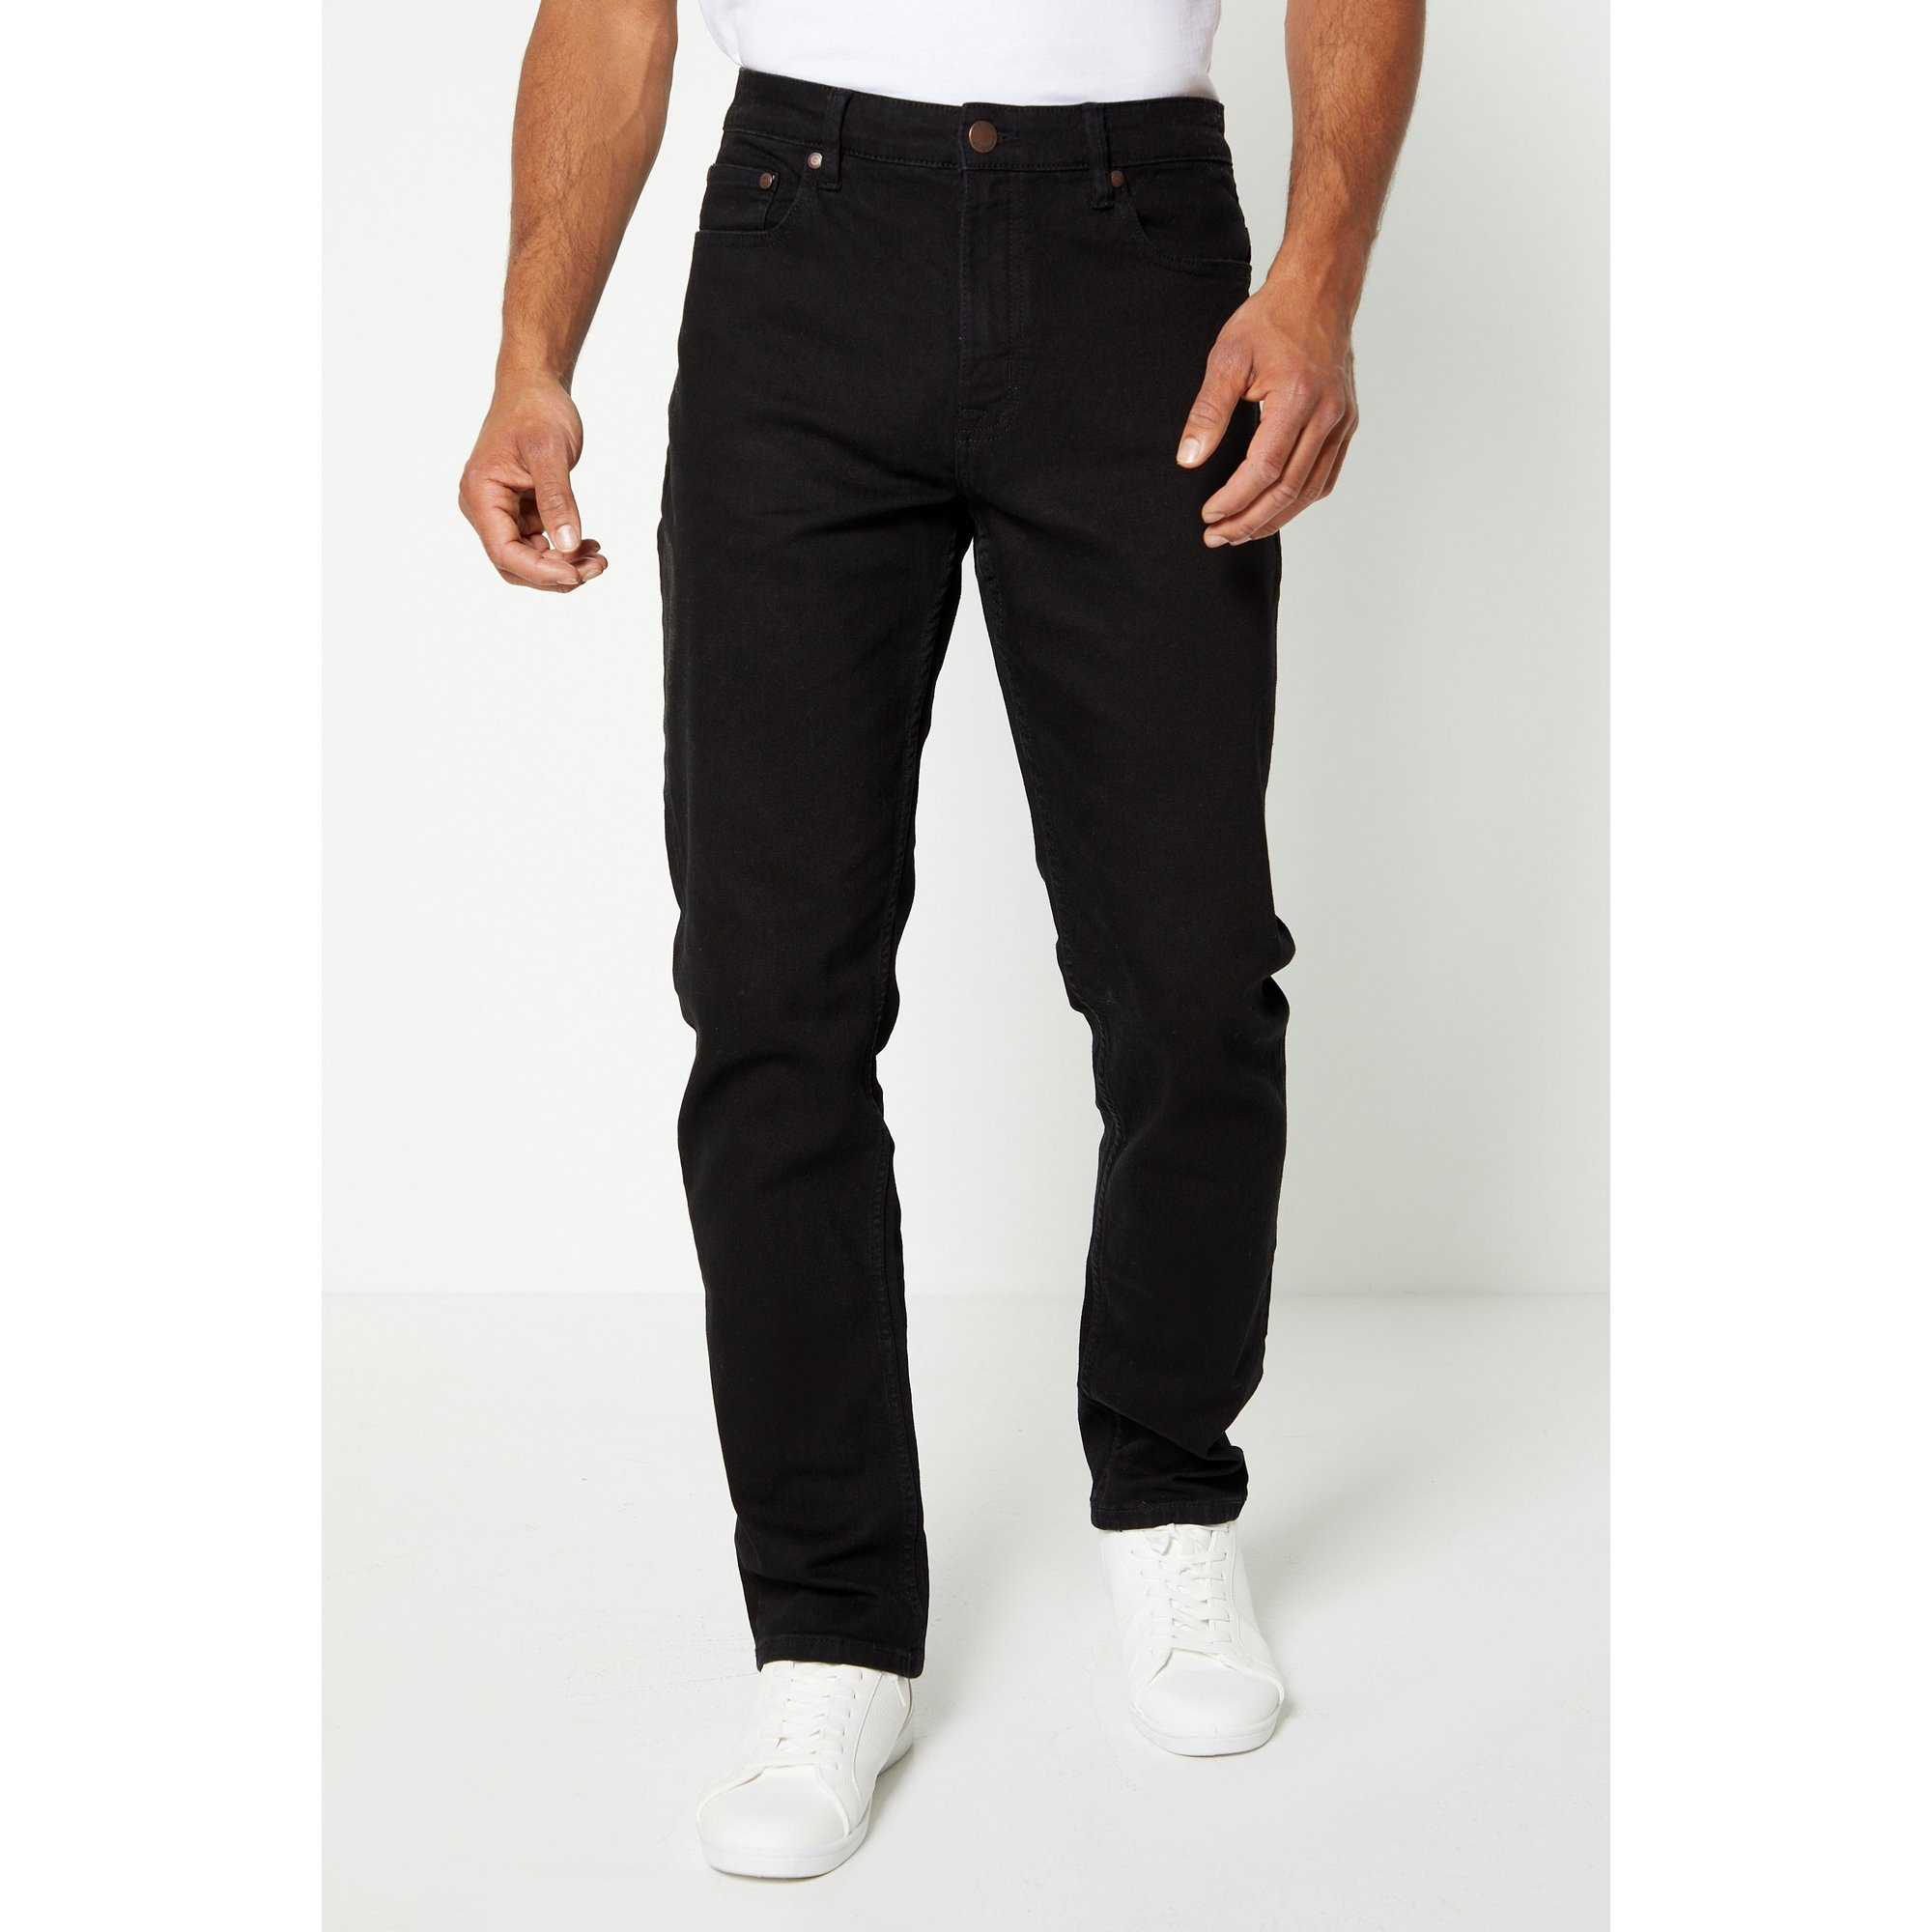 Image of Ben Sherman Black Straight Fit Jeans